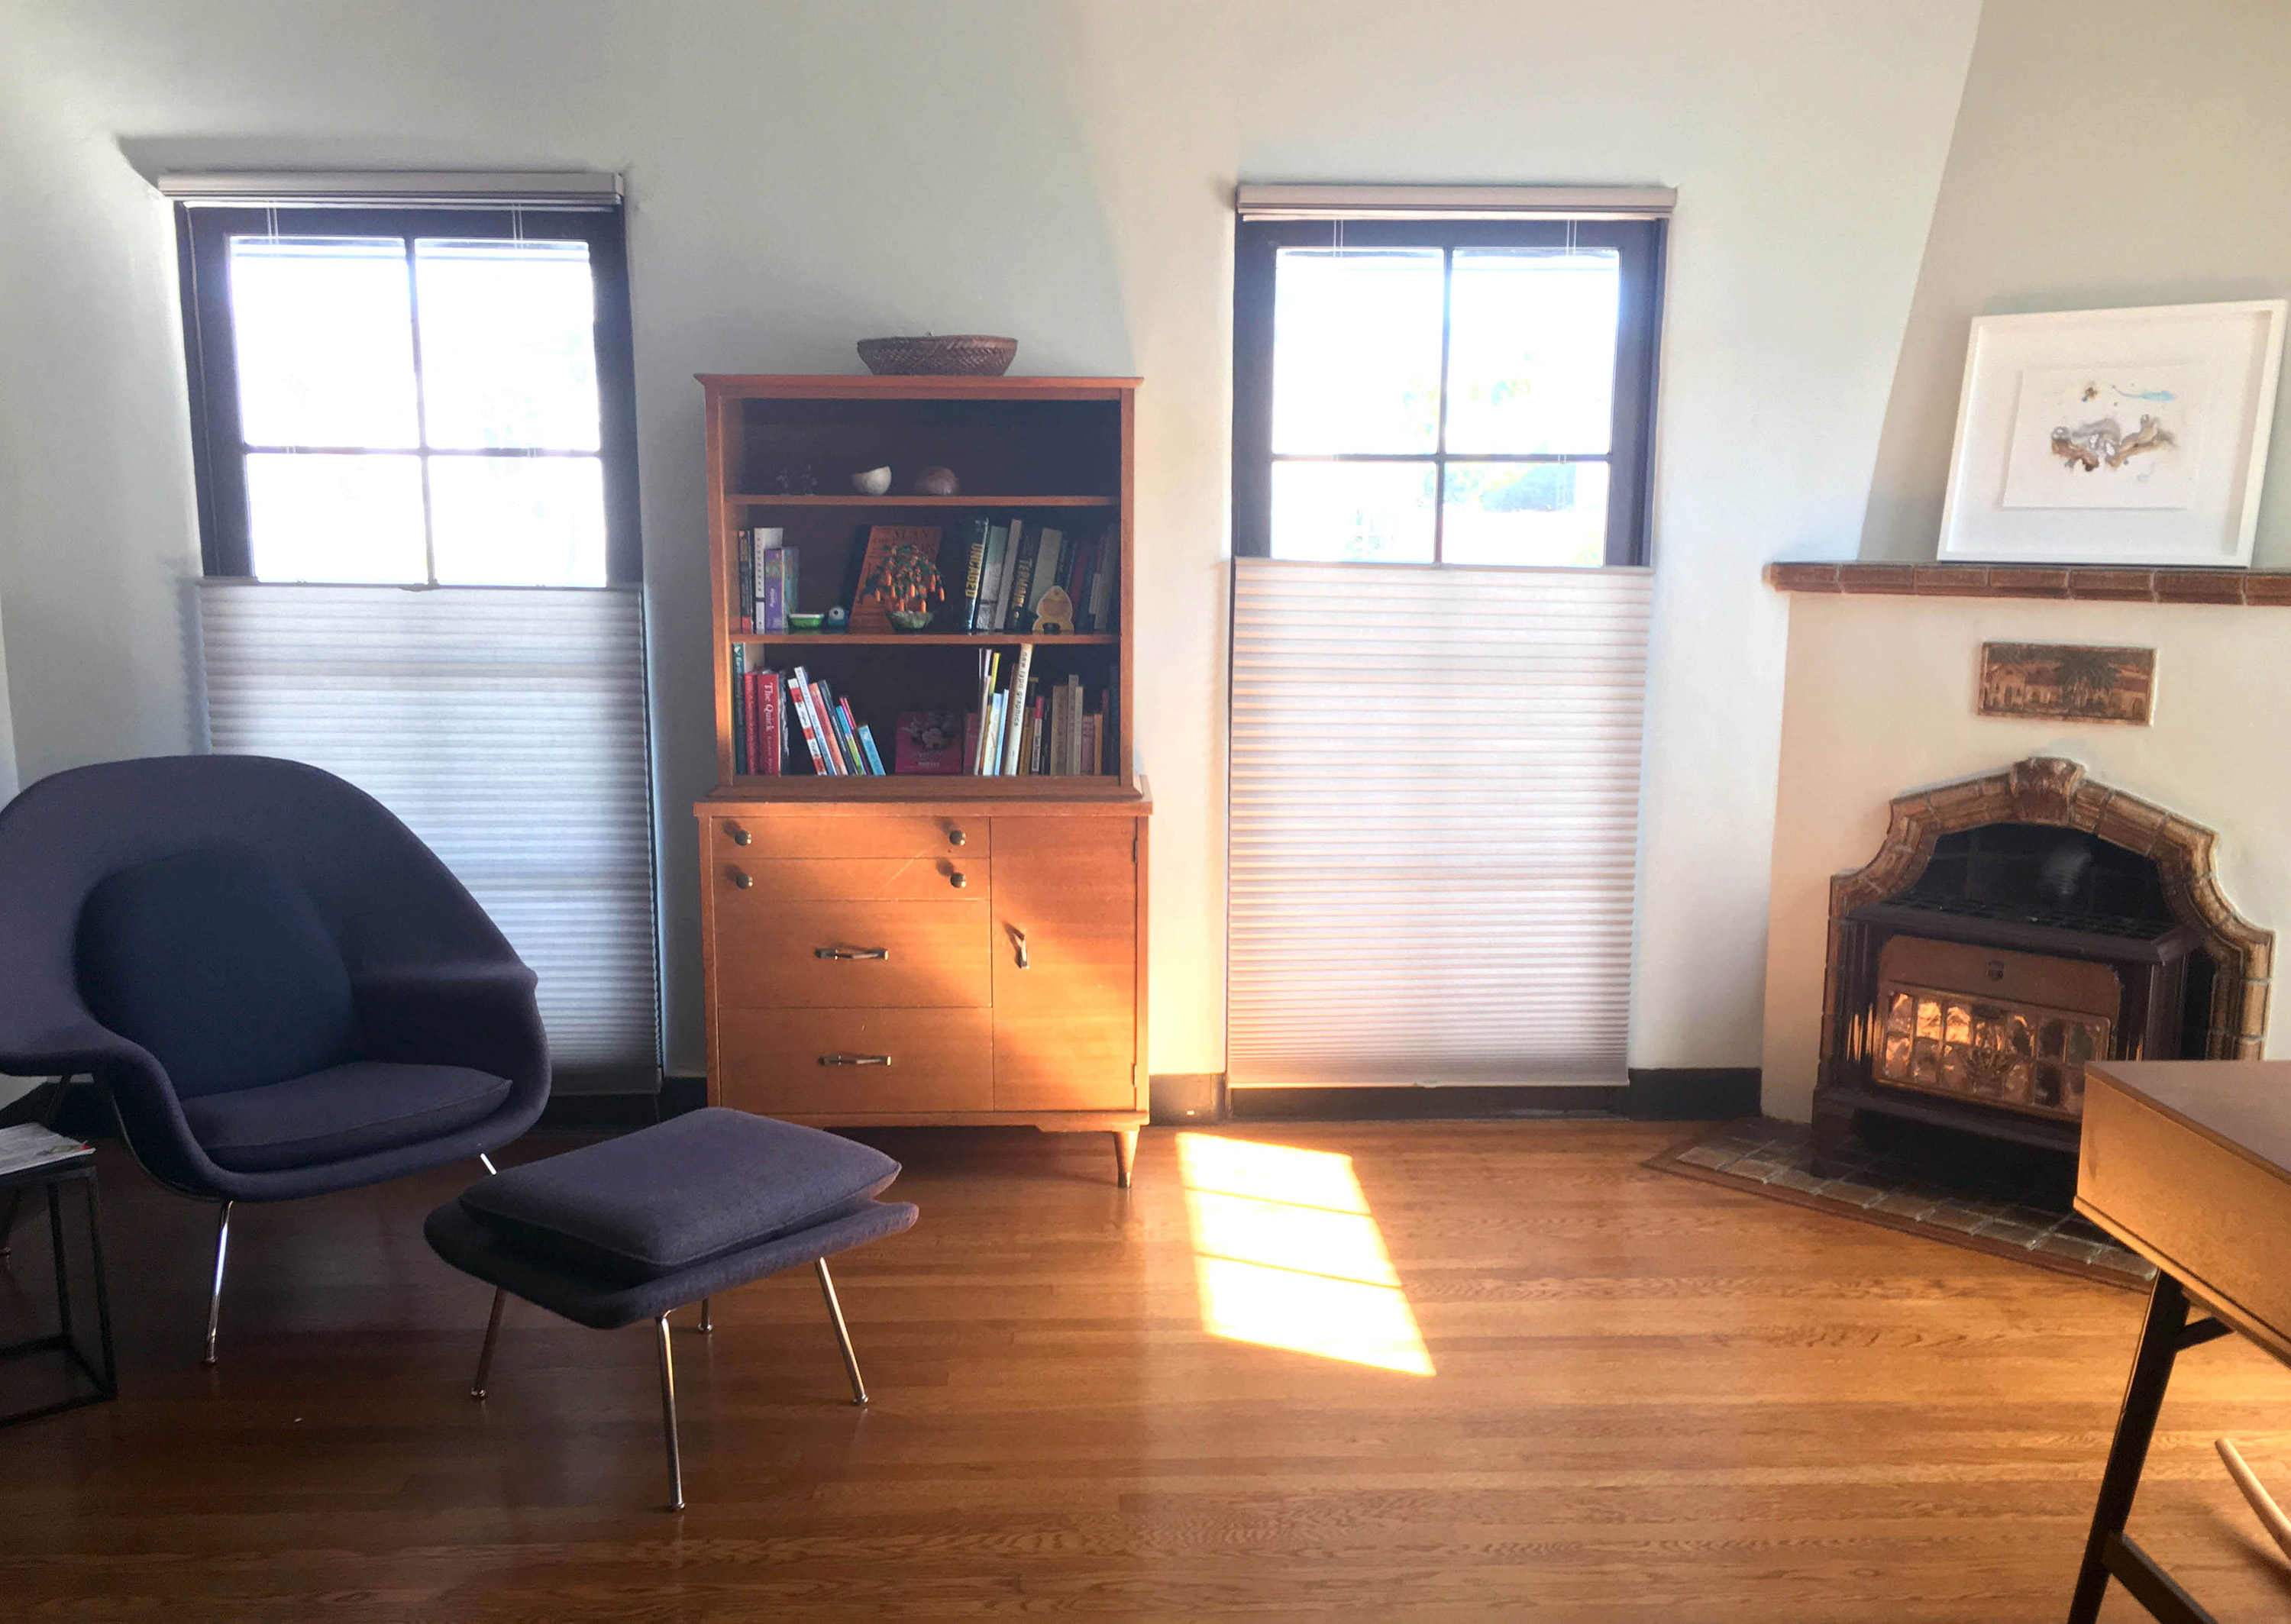 Local Airbnb hosts worry they will be regulated out of business